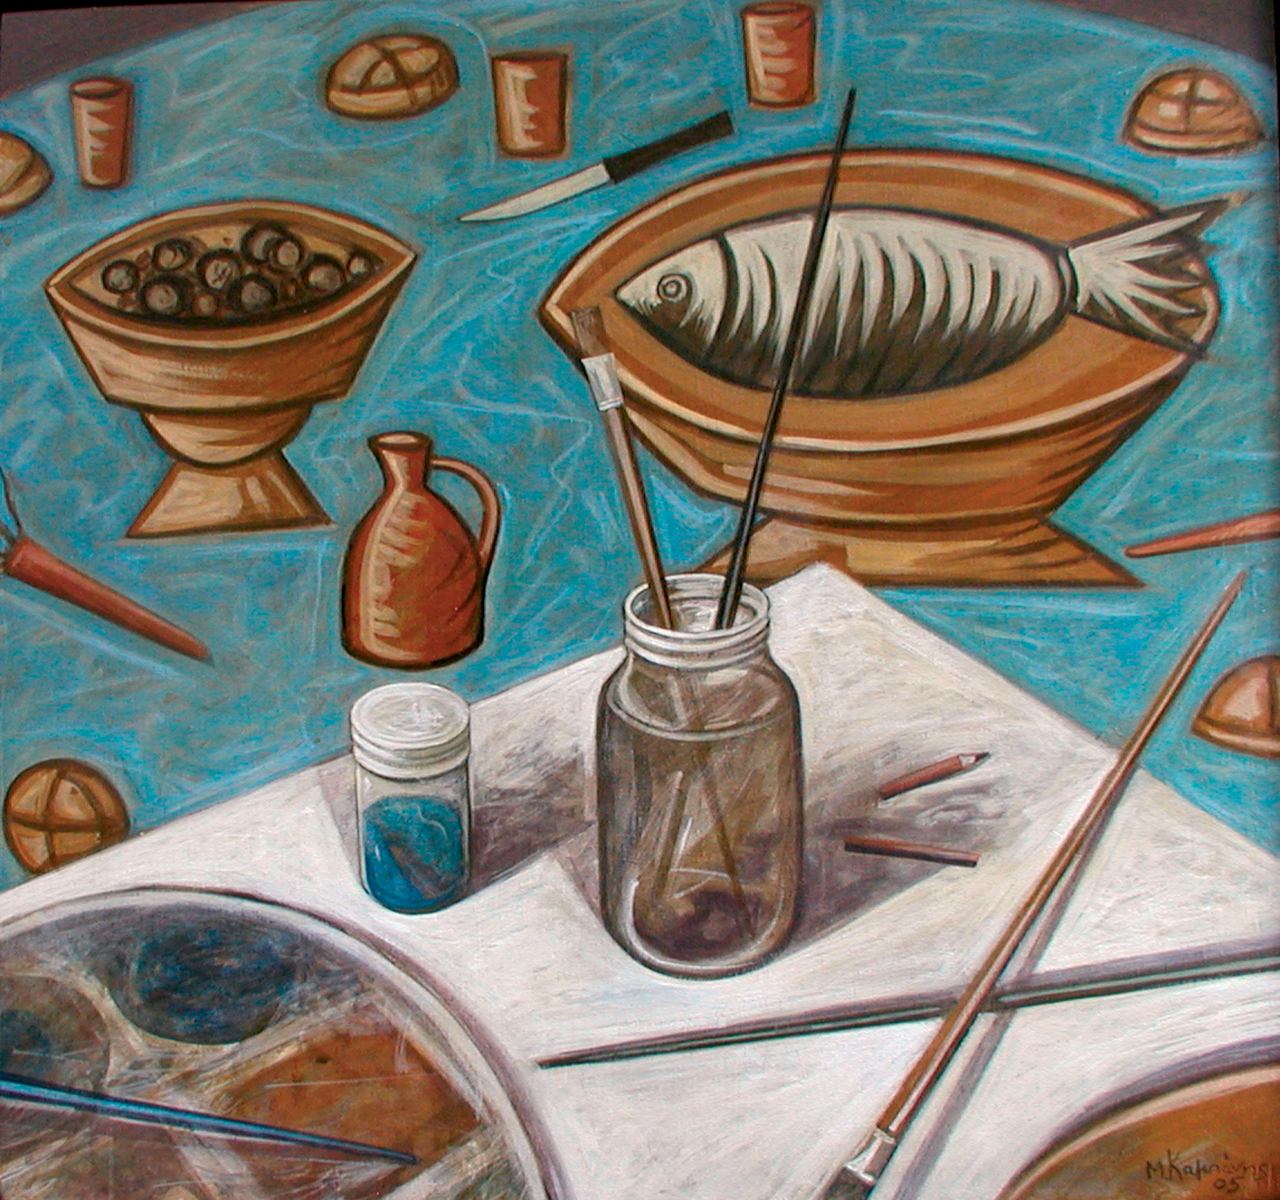 Markos Kampanis, The Last Supper Table, 2005. Acrylic on wood, 42 x 45 cm.